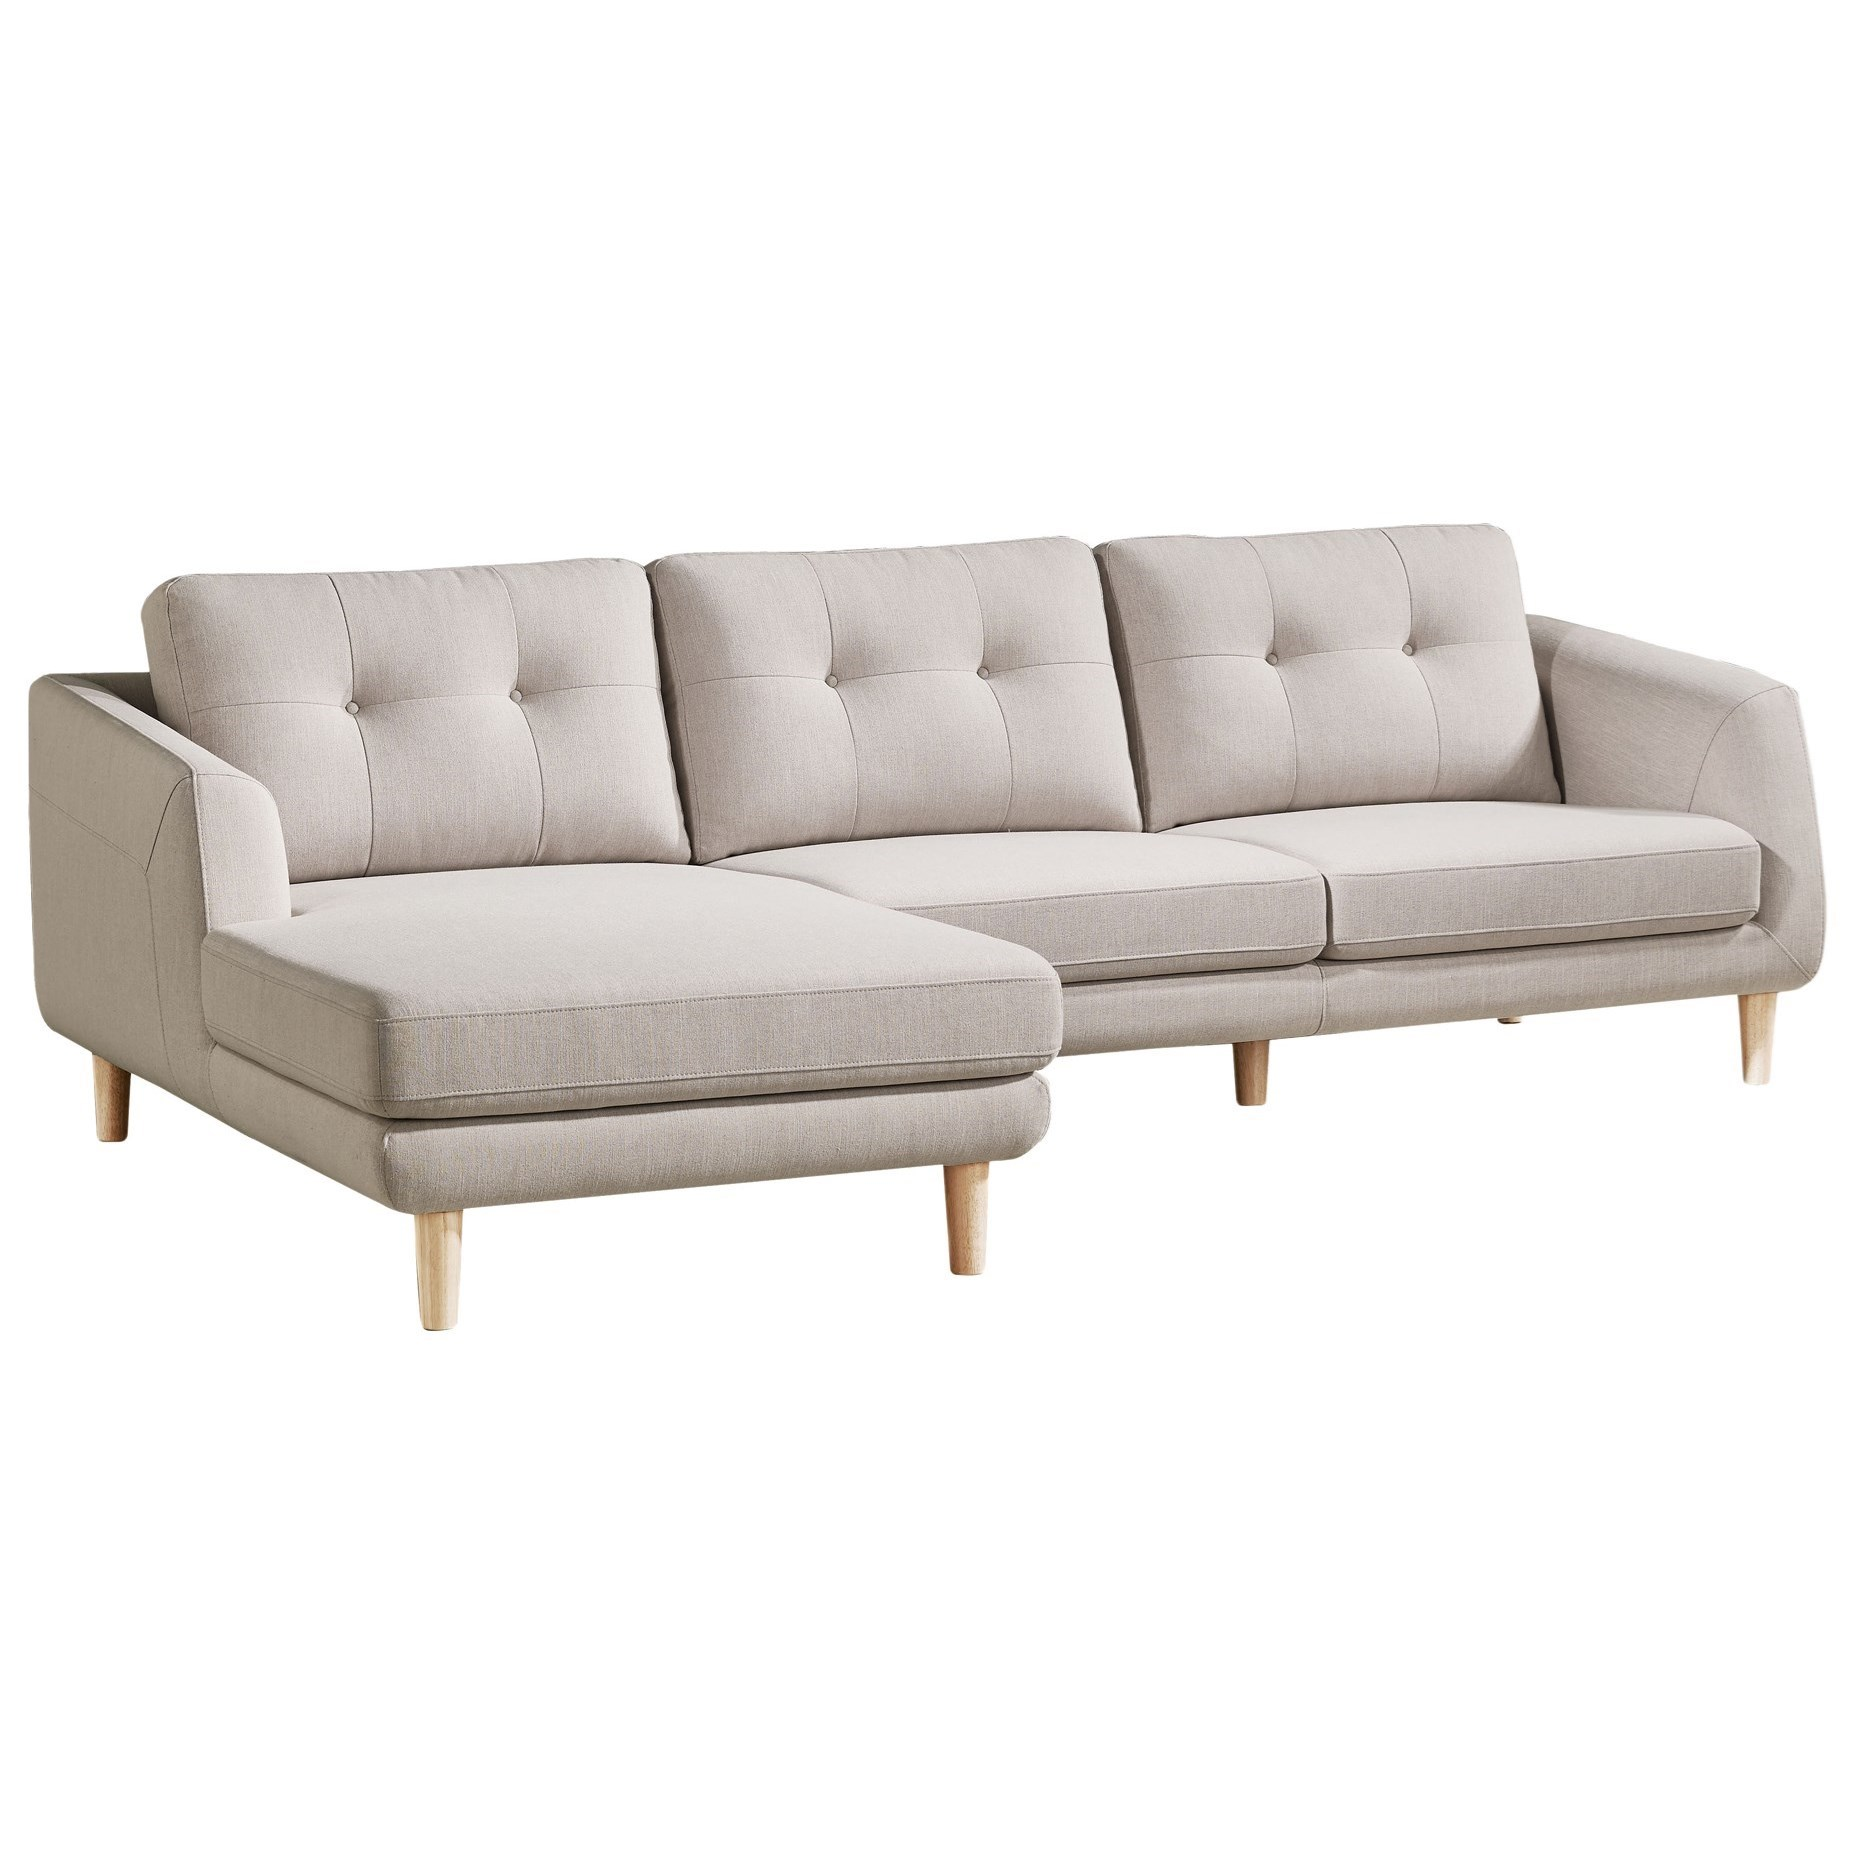 Corey Sectional Sofa with Left Chaise by Moe's Home Collection at Stoney Creek Furniture